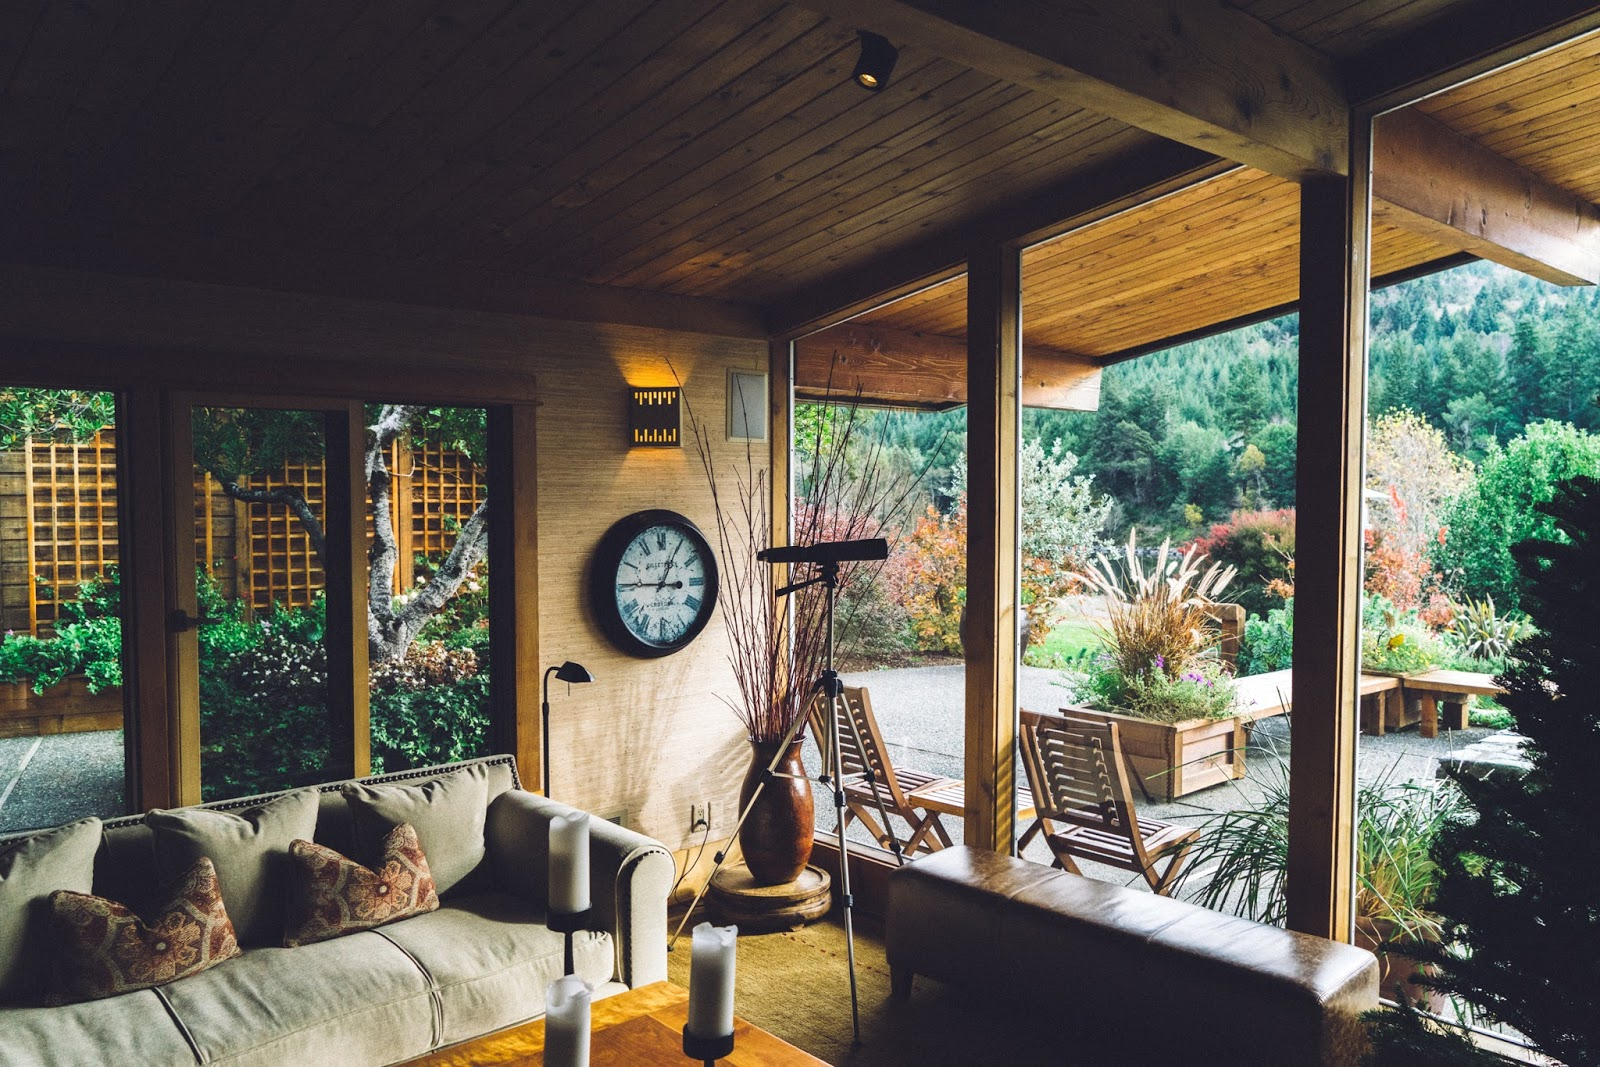 Tips to Renovate Your Home Beautifully Yet Economically 1